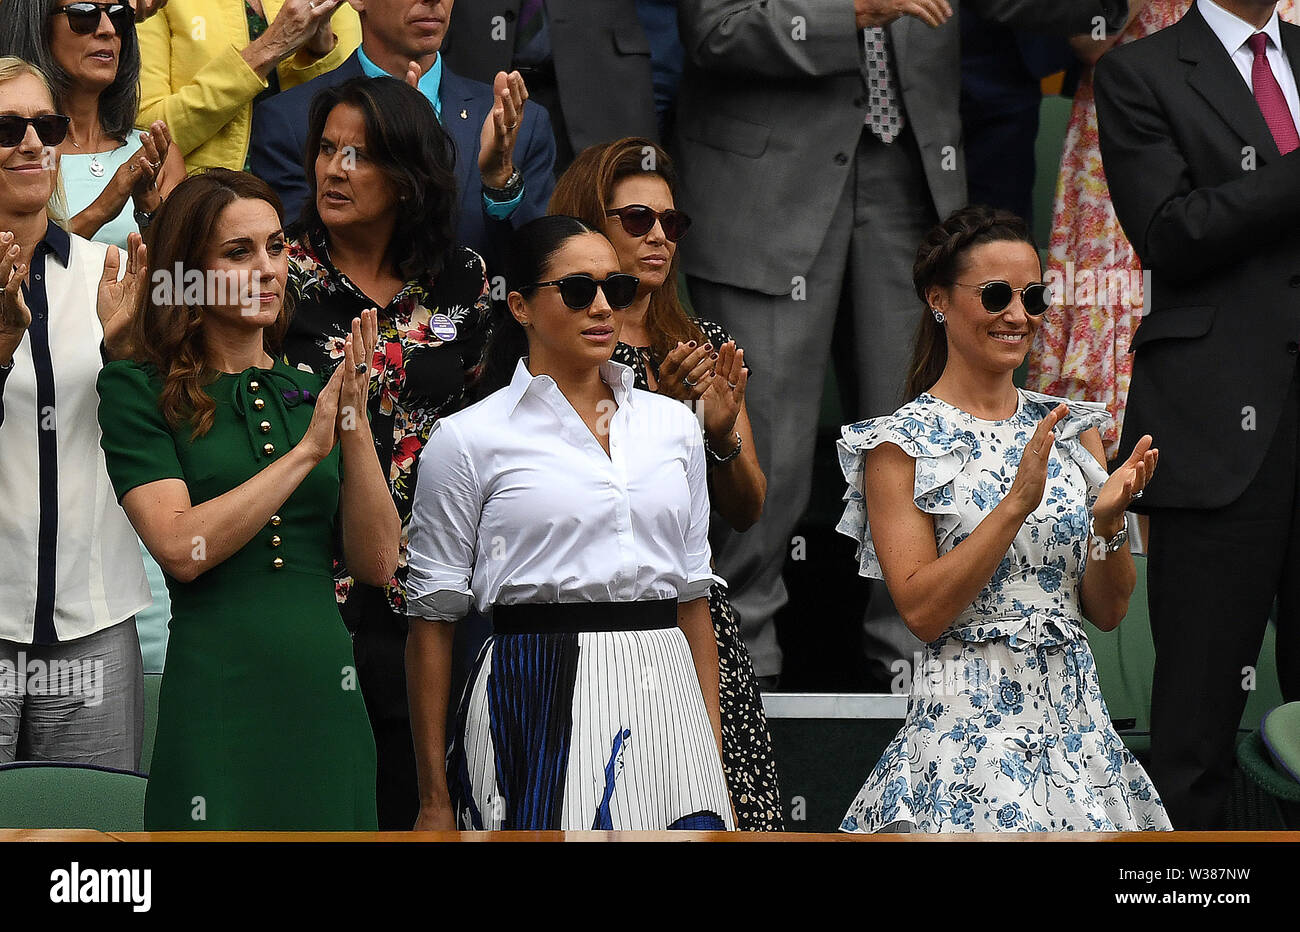 London England  13 July 2019 The Championships Wimbledon 2019 13072019  Katherine Duchess of Cambridge and Pippa Matthews applaud from the  Royal Box after Simona Halep wins Ladies Singles Final but  Meghan Duchess of Sussex does not join in. Photo Roger Parker International Sports Fotos Ltd/Alamy Live News - Stock Image